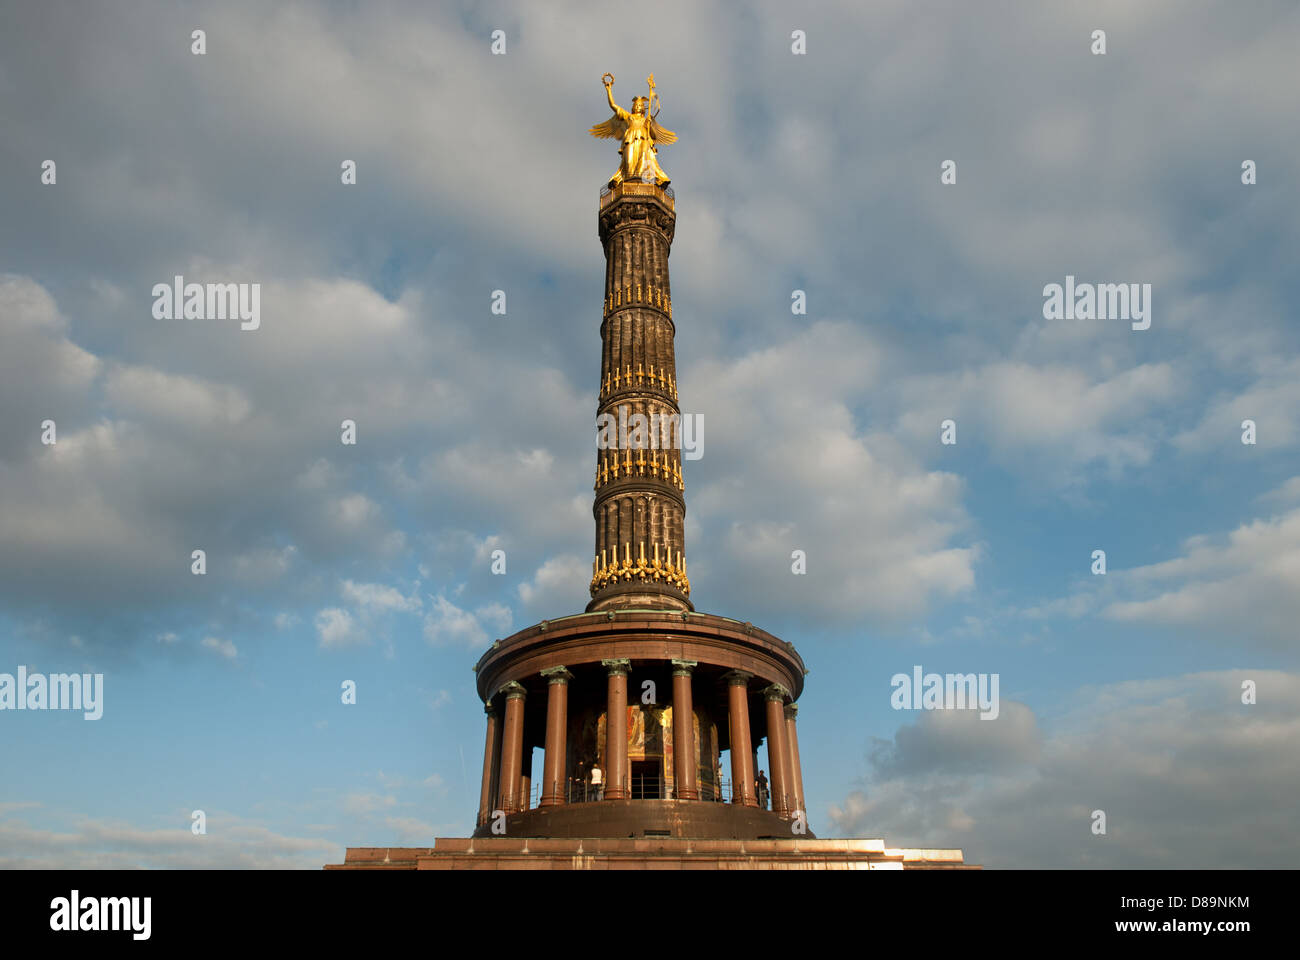 The Victory Column in Berlin, Germany. - Stock Image